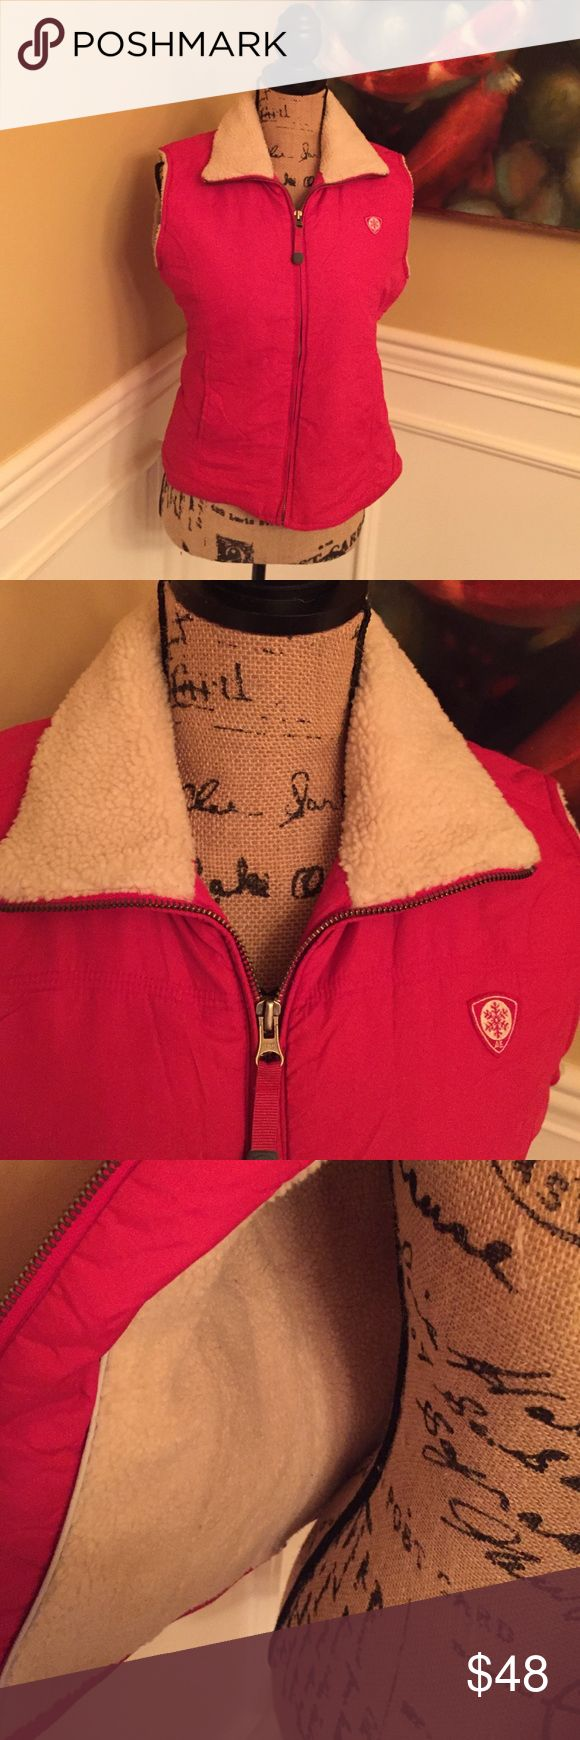 American Eagle Outfitters puffer vest in red Size medium and lined in cream and in great shape American Eagle Outfitters Jackets & Coats Vests